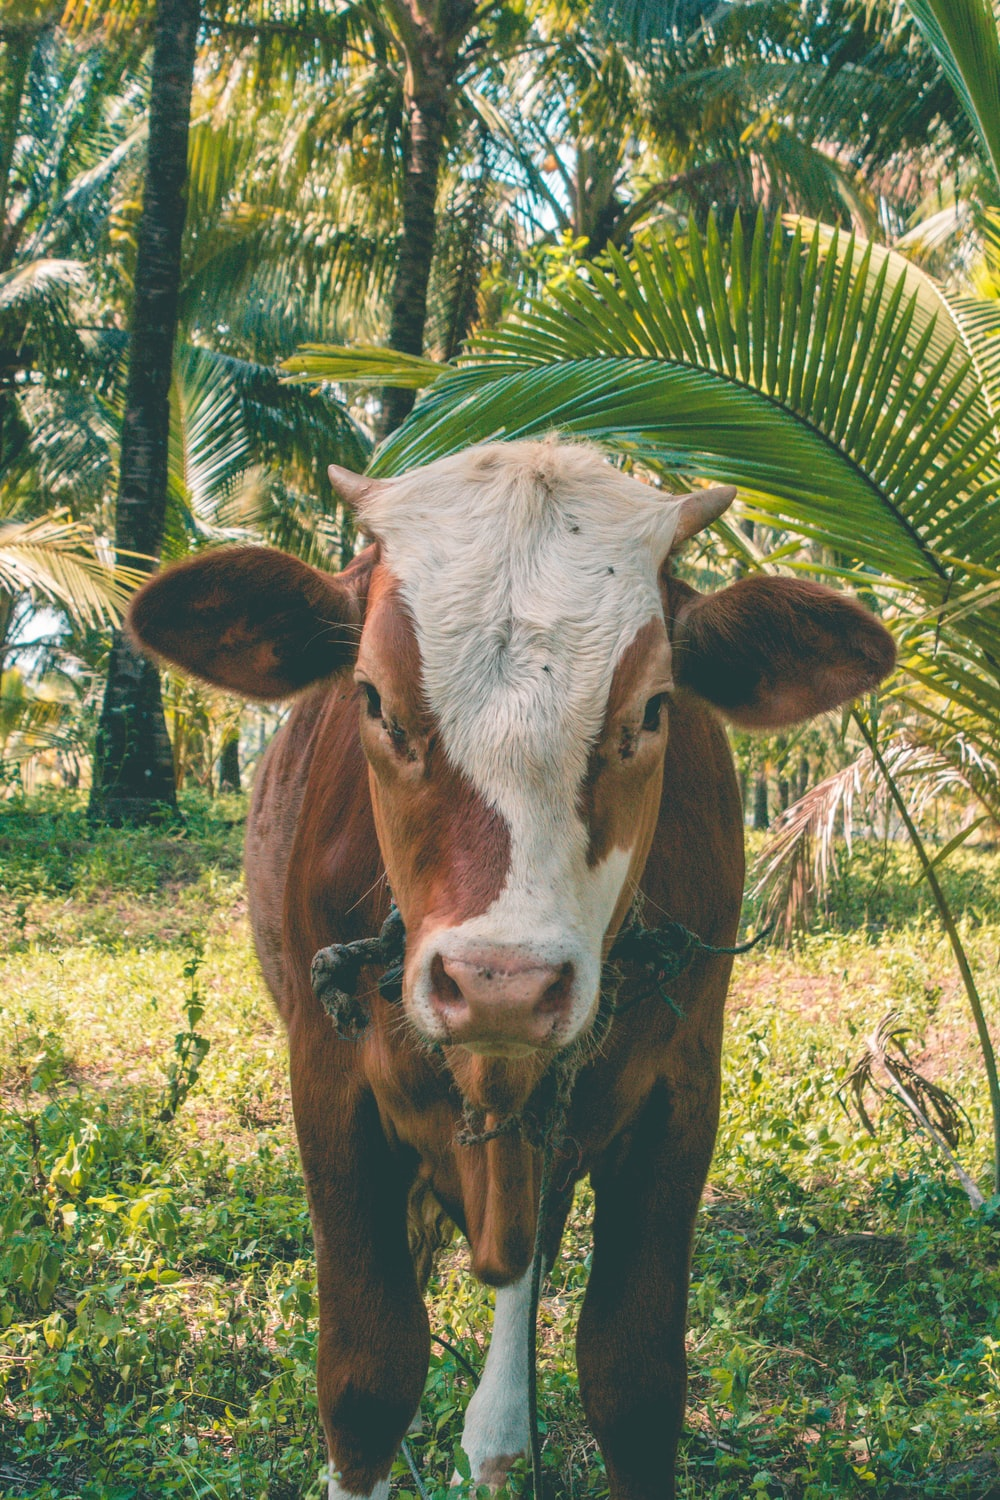 brown and white cow eating grass during daytime